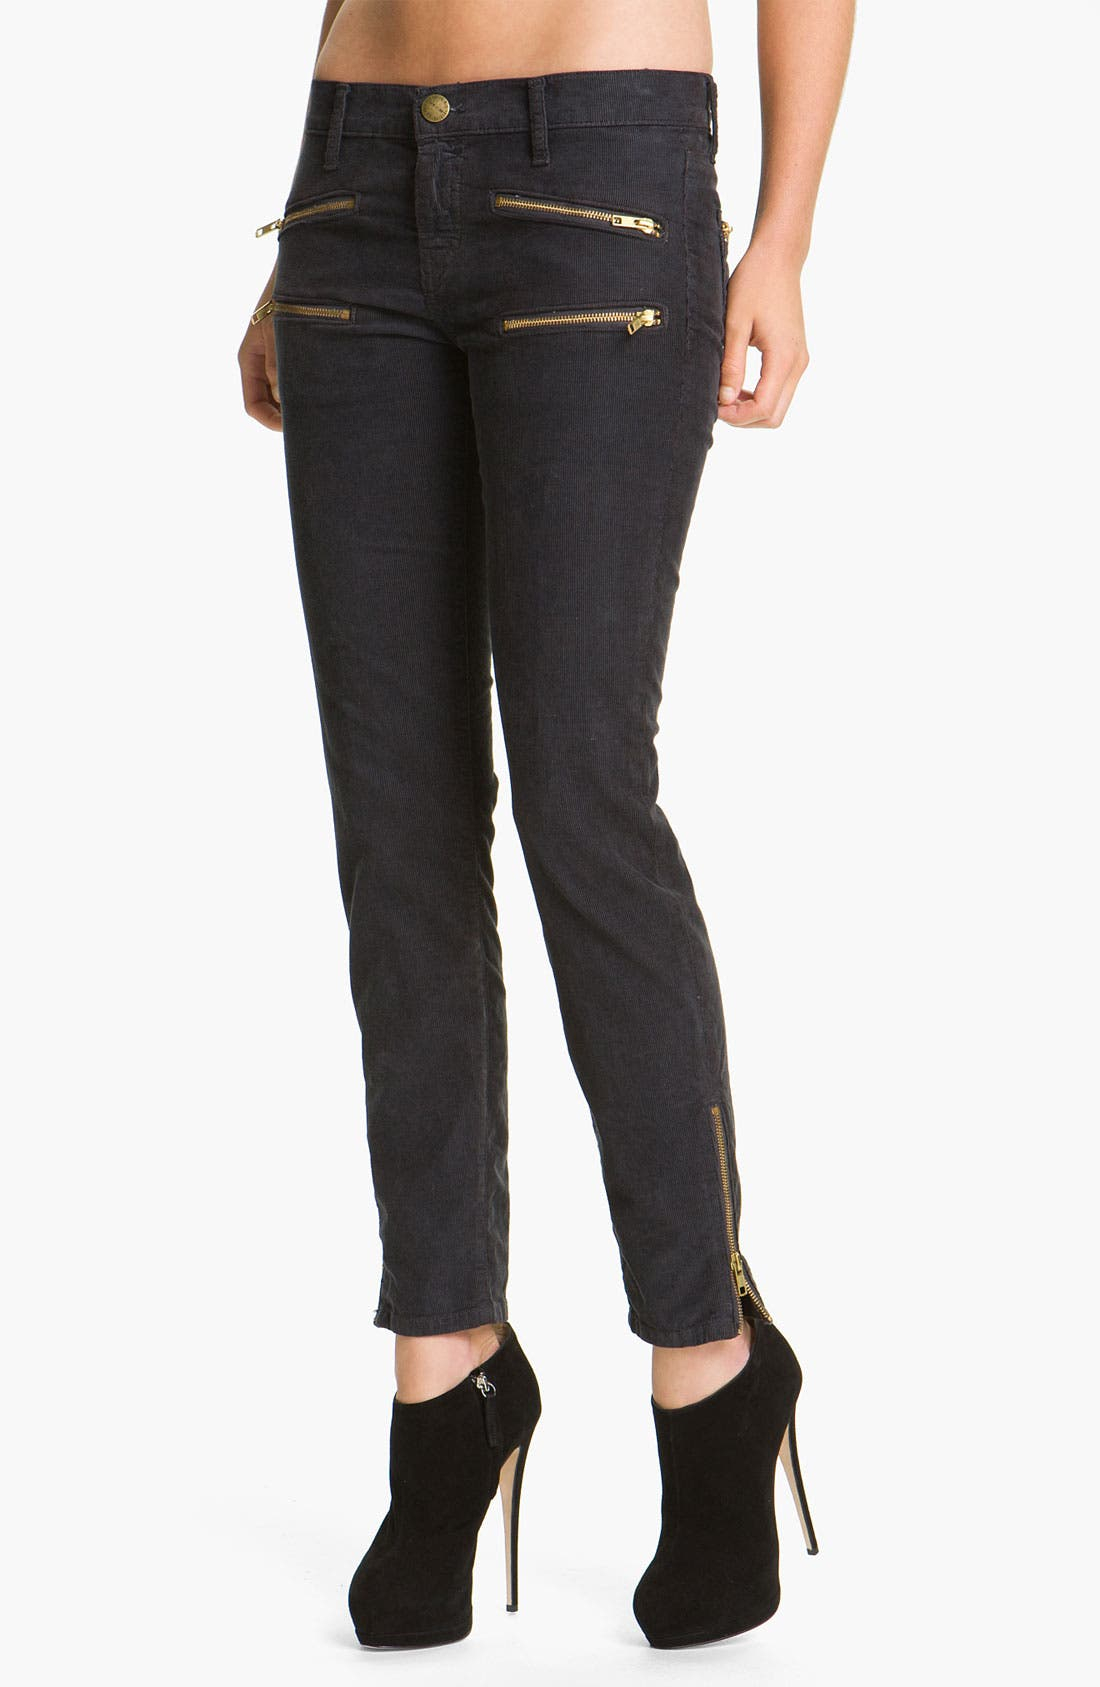 Main Image - Current/Elliott 'The Stiletto' Moto Skinny Jeans (Shadow)